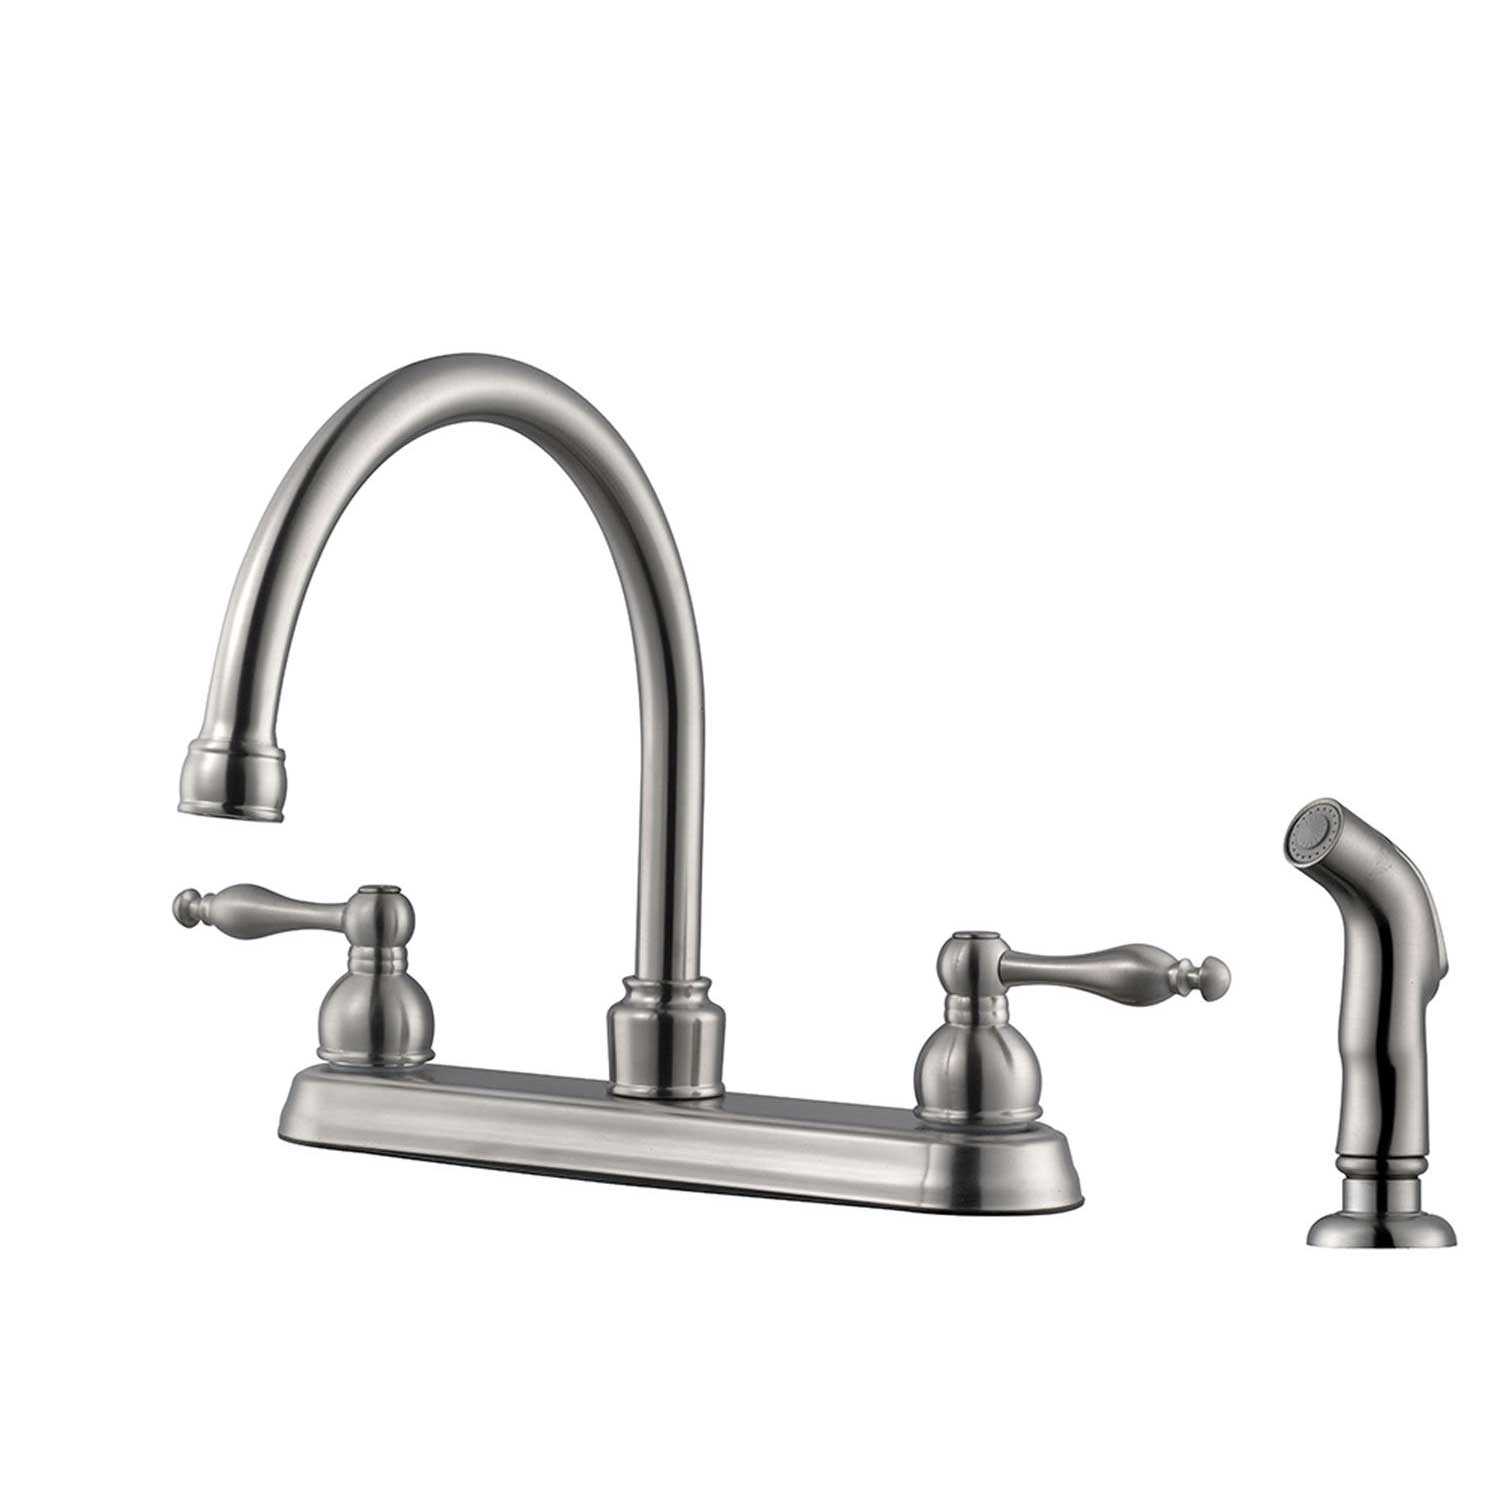 Design House Saratoga Kitchen Faucet with Side Sprayer, Satin Nickel - 546119